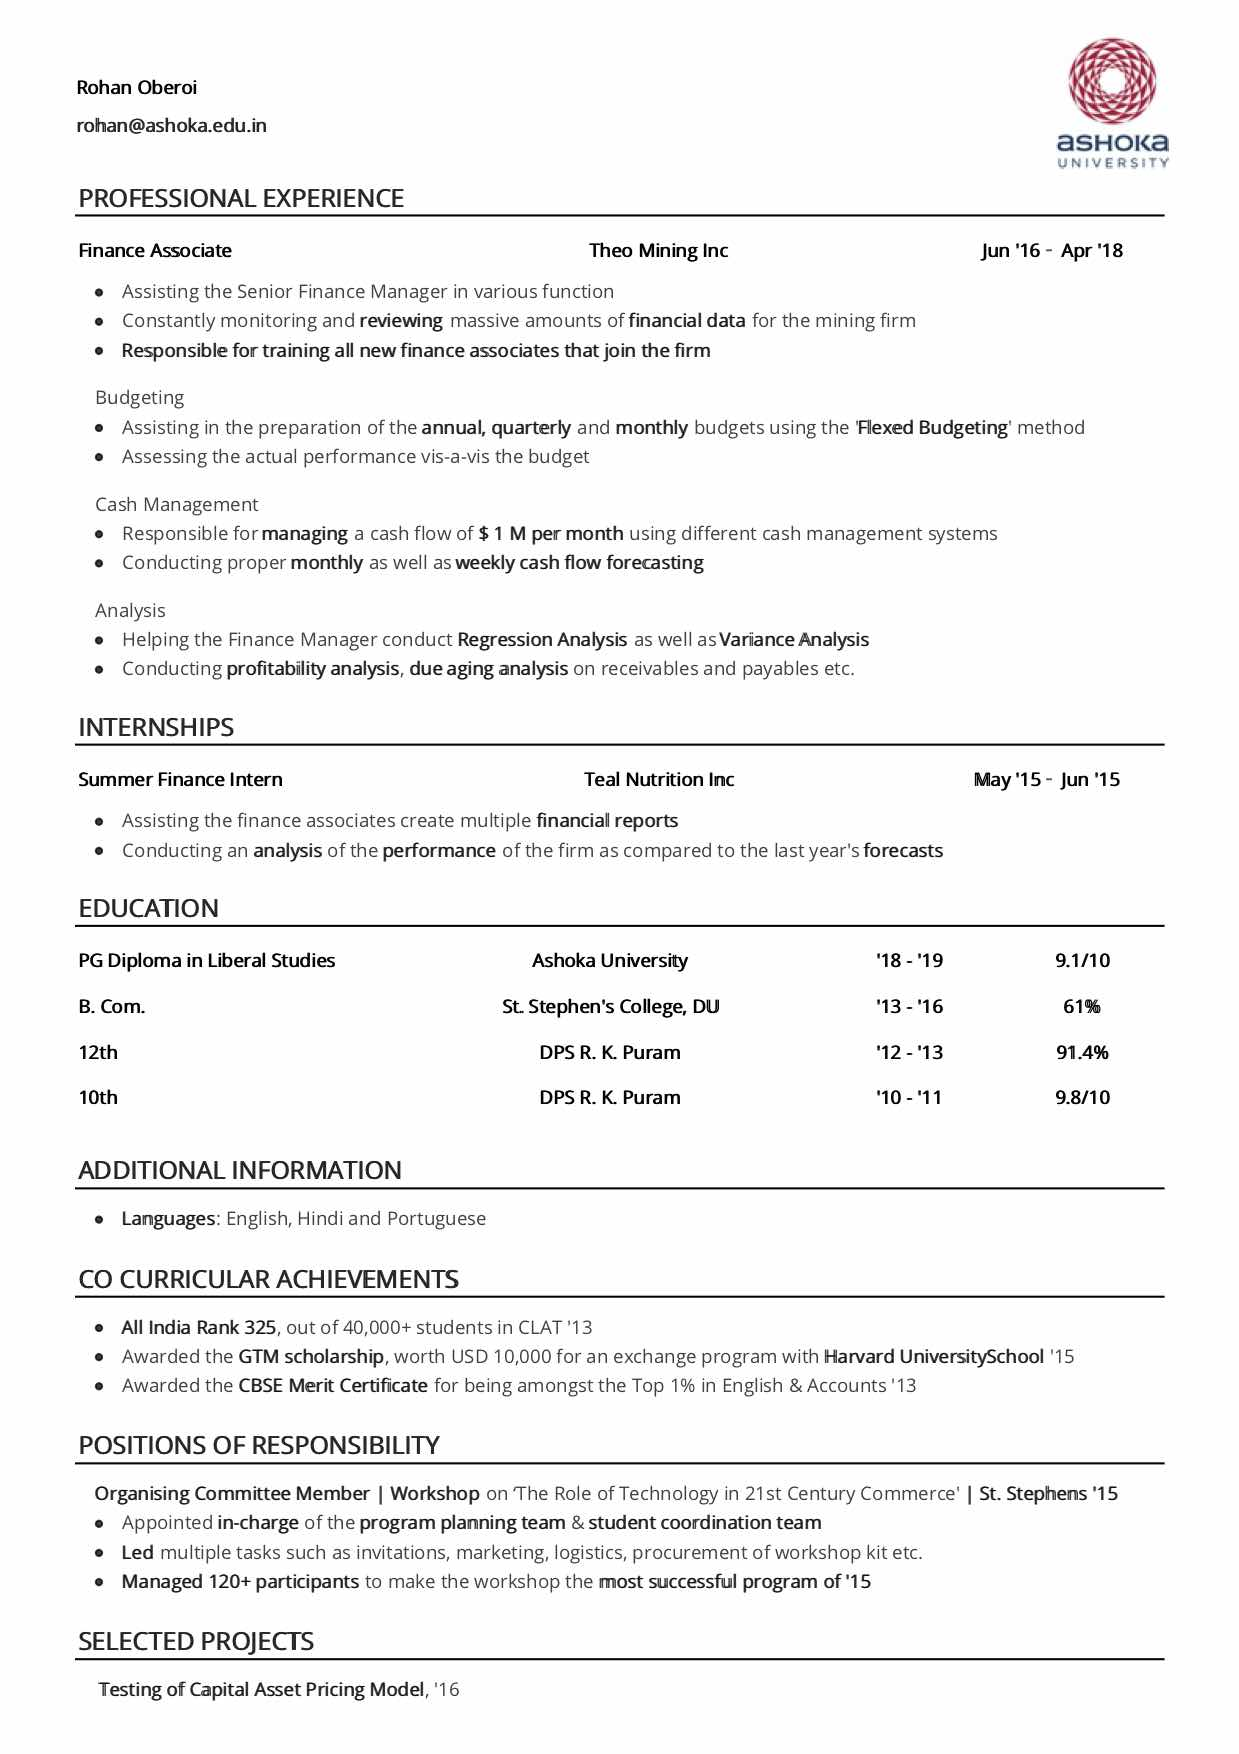 https://d31kzl7c7thvlu.cloudfront.net/template/Ashoka's Resume Design/Ashokas_Resume_Template_Small.jpg